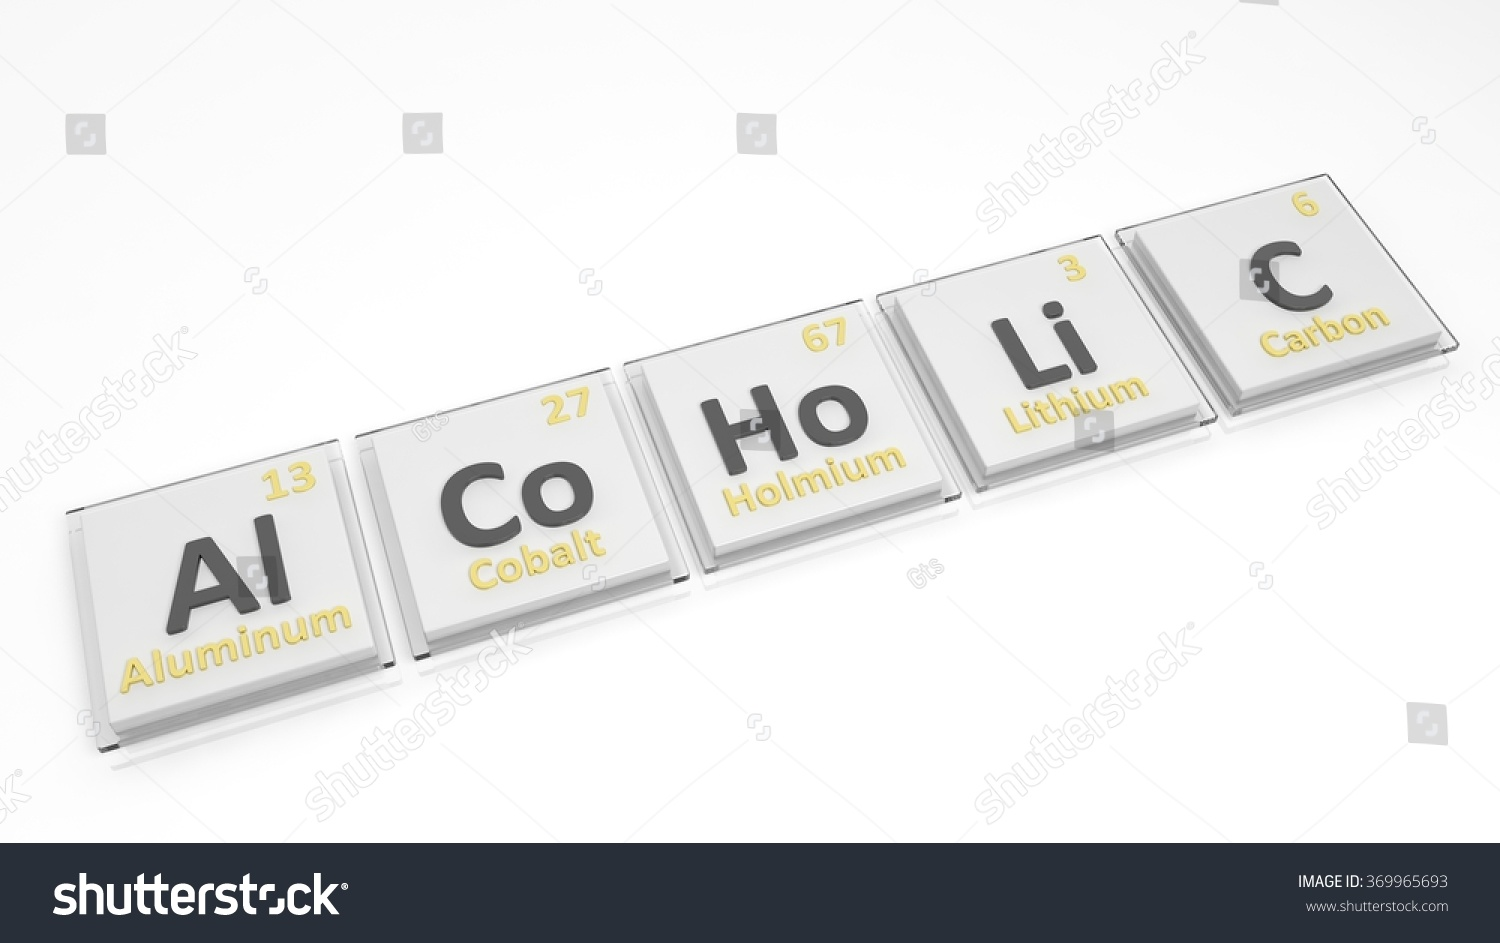 Periodic table elements symbols used form stock illustration periodic table of elements symbols used to form word alcoholic isolated on white urtaz Image collections